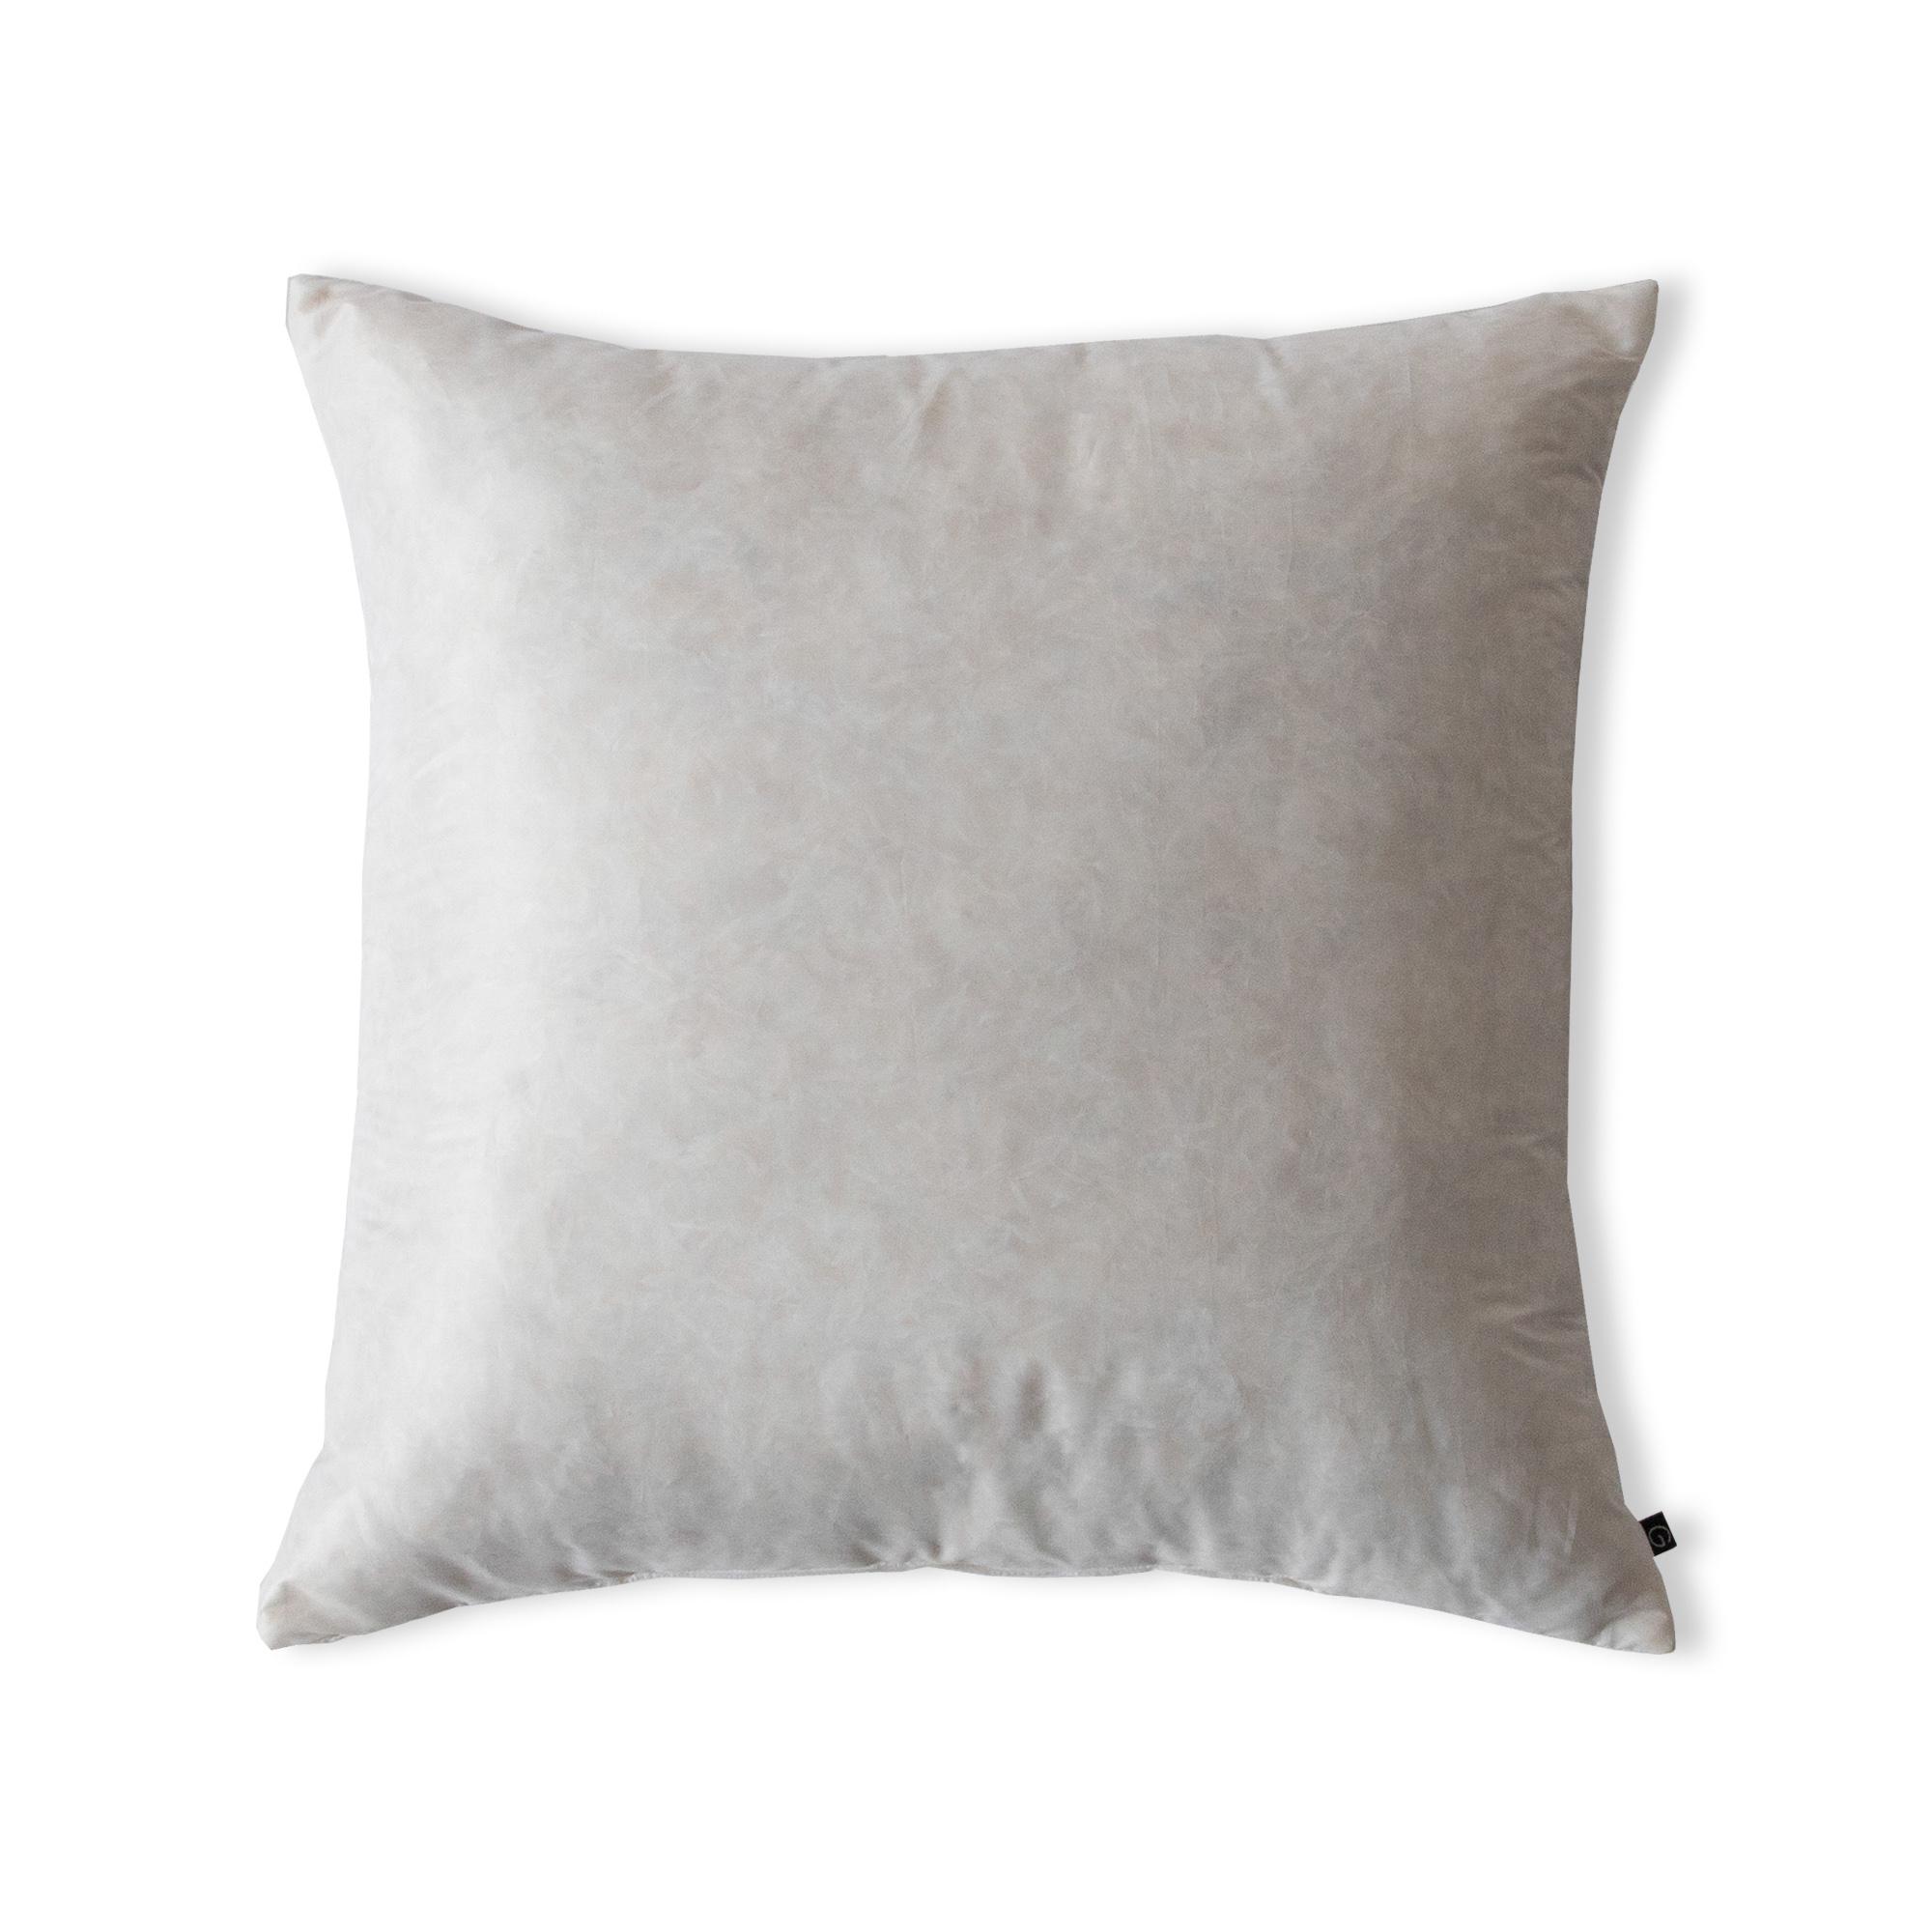 "DOWN FEATHER FILLER (18"" X 18"") SUITABLE FOR A 18"" X 18"" CUSHION COVER"